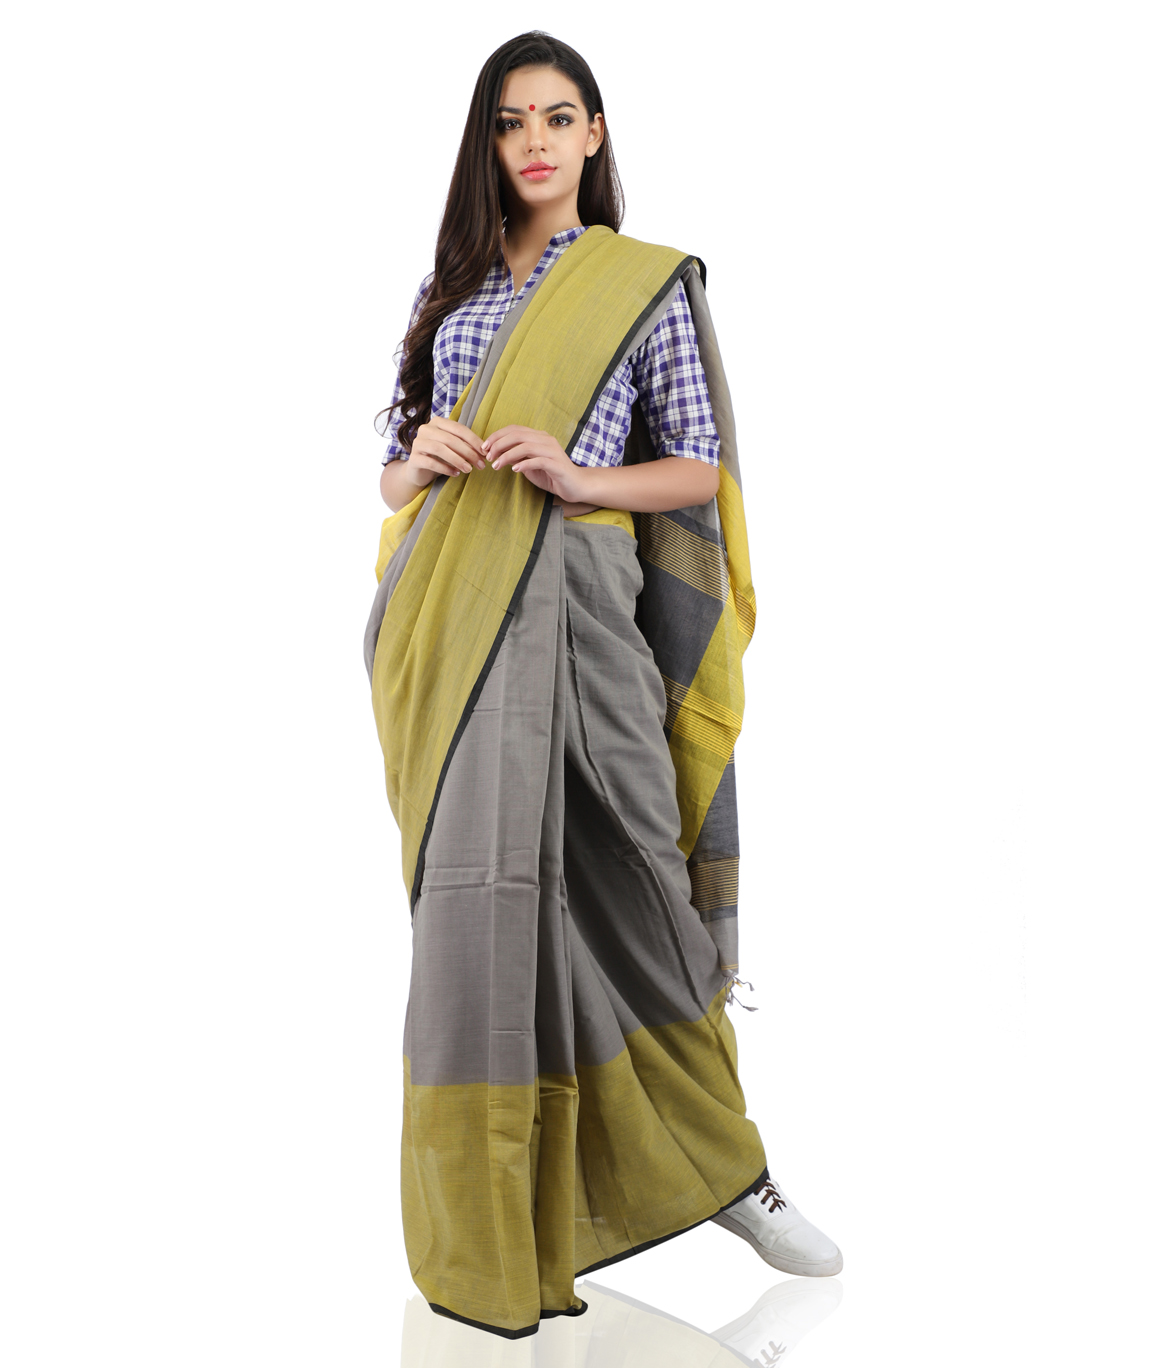 Handloom Pure Cotton Saree in Grey and Yellow With Blouse Piece